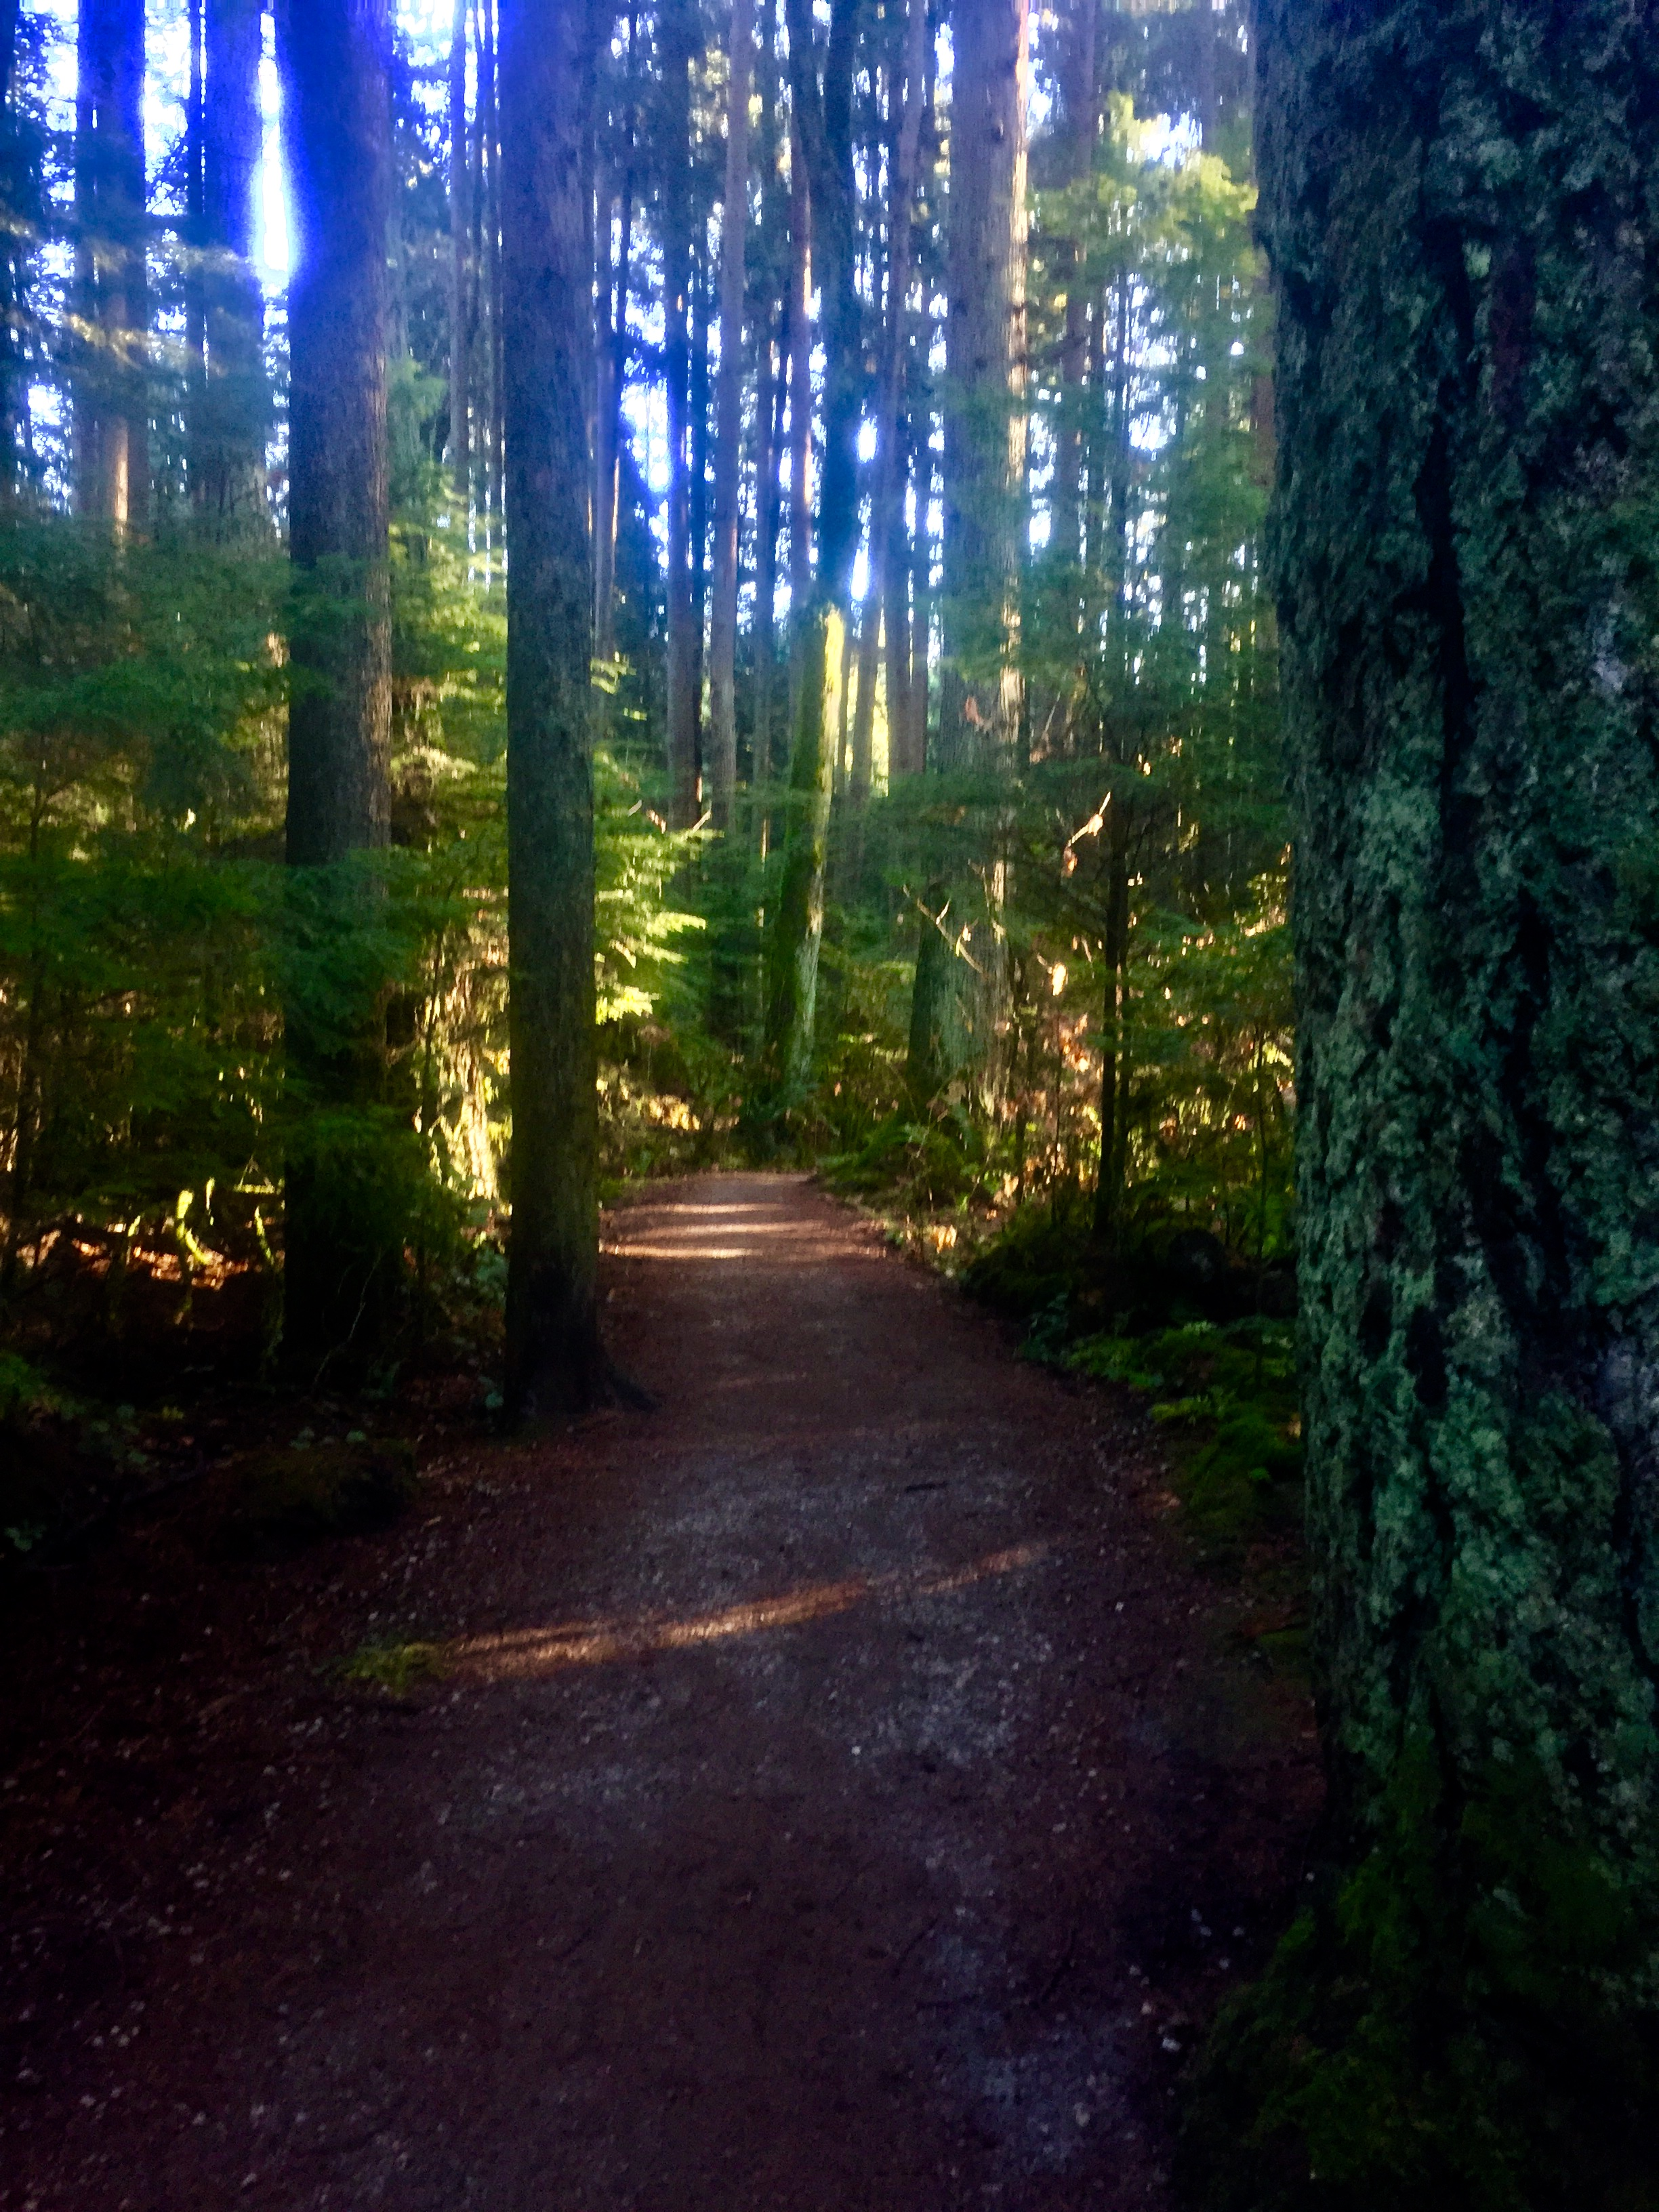 Disappear into the tranquility of Pacific Spirit Regional Park